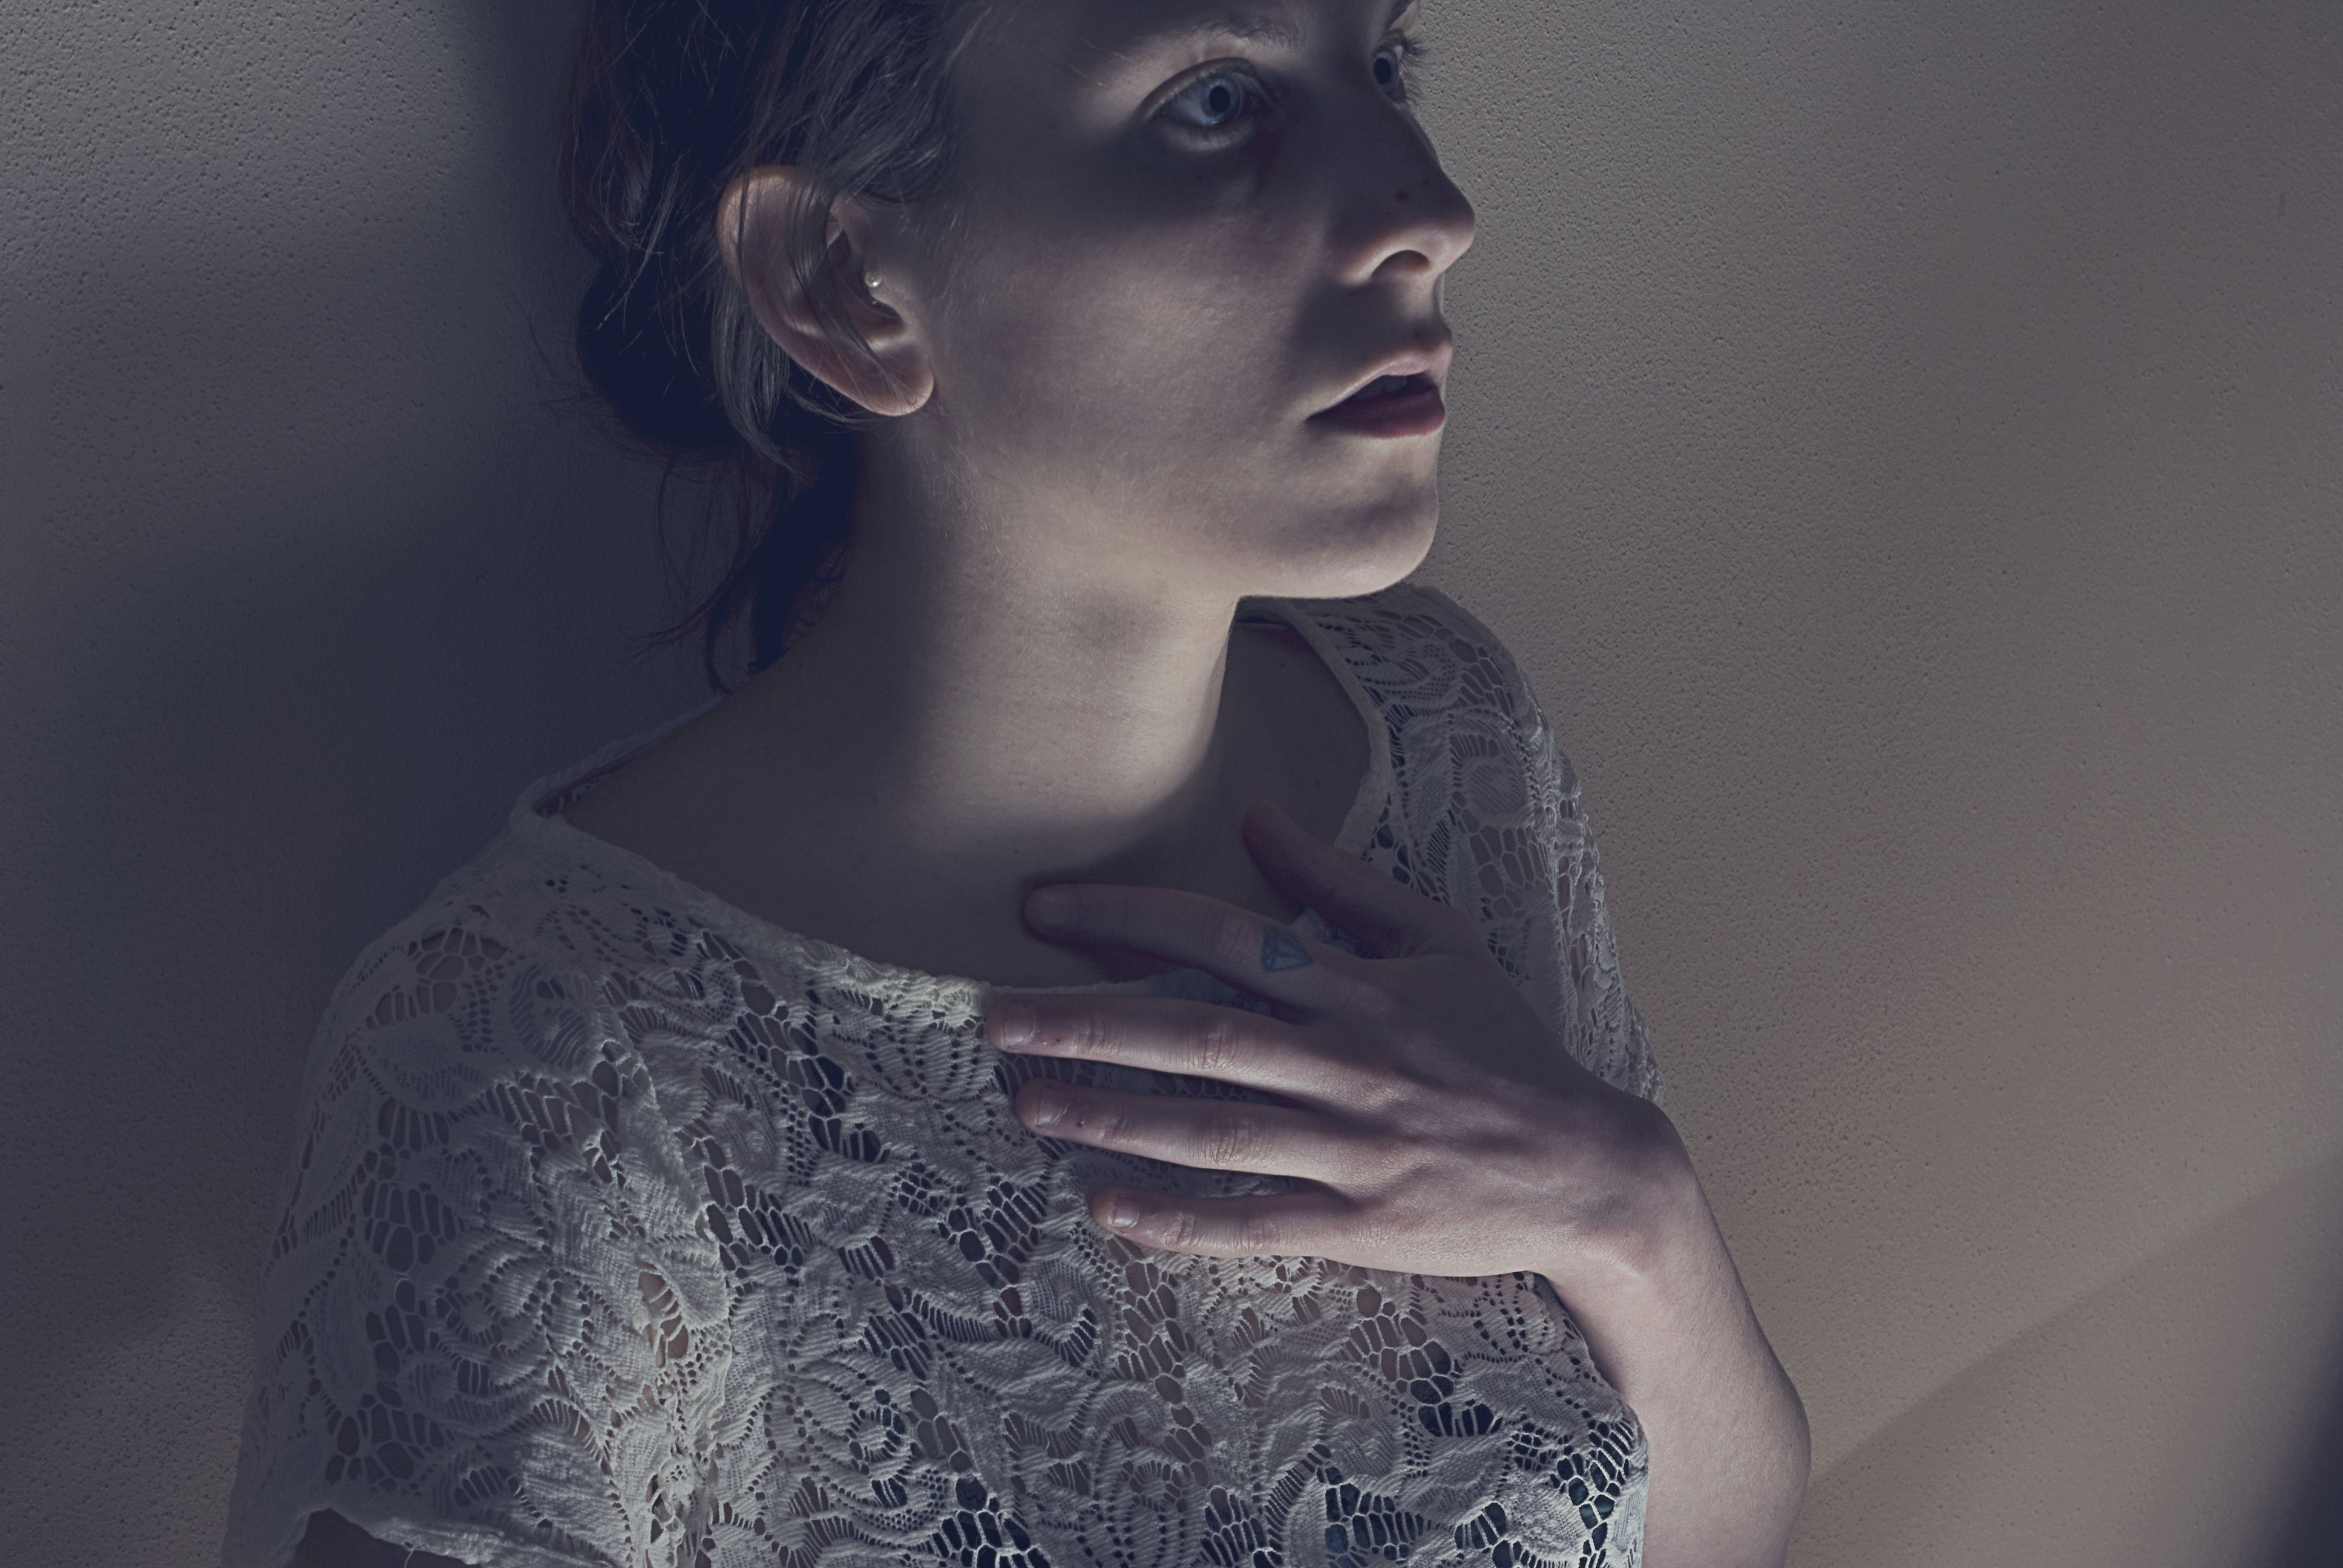 Scared woman leaning against a wall